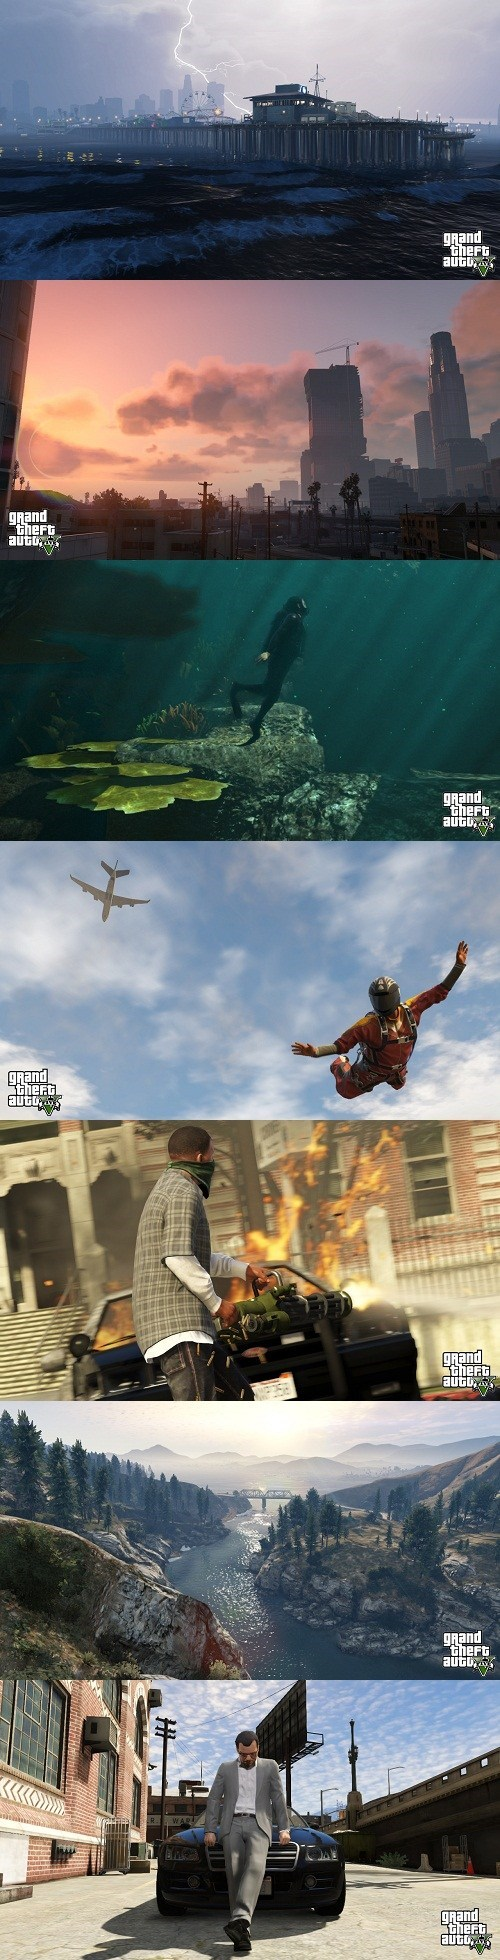 grand theft auto v screenshots video games Rockstar Games